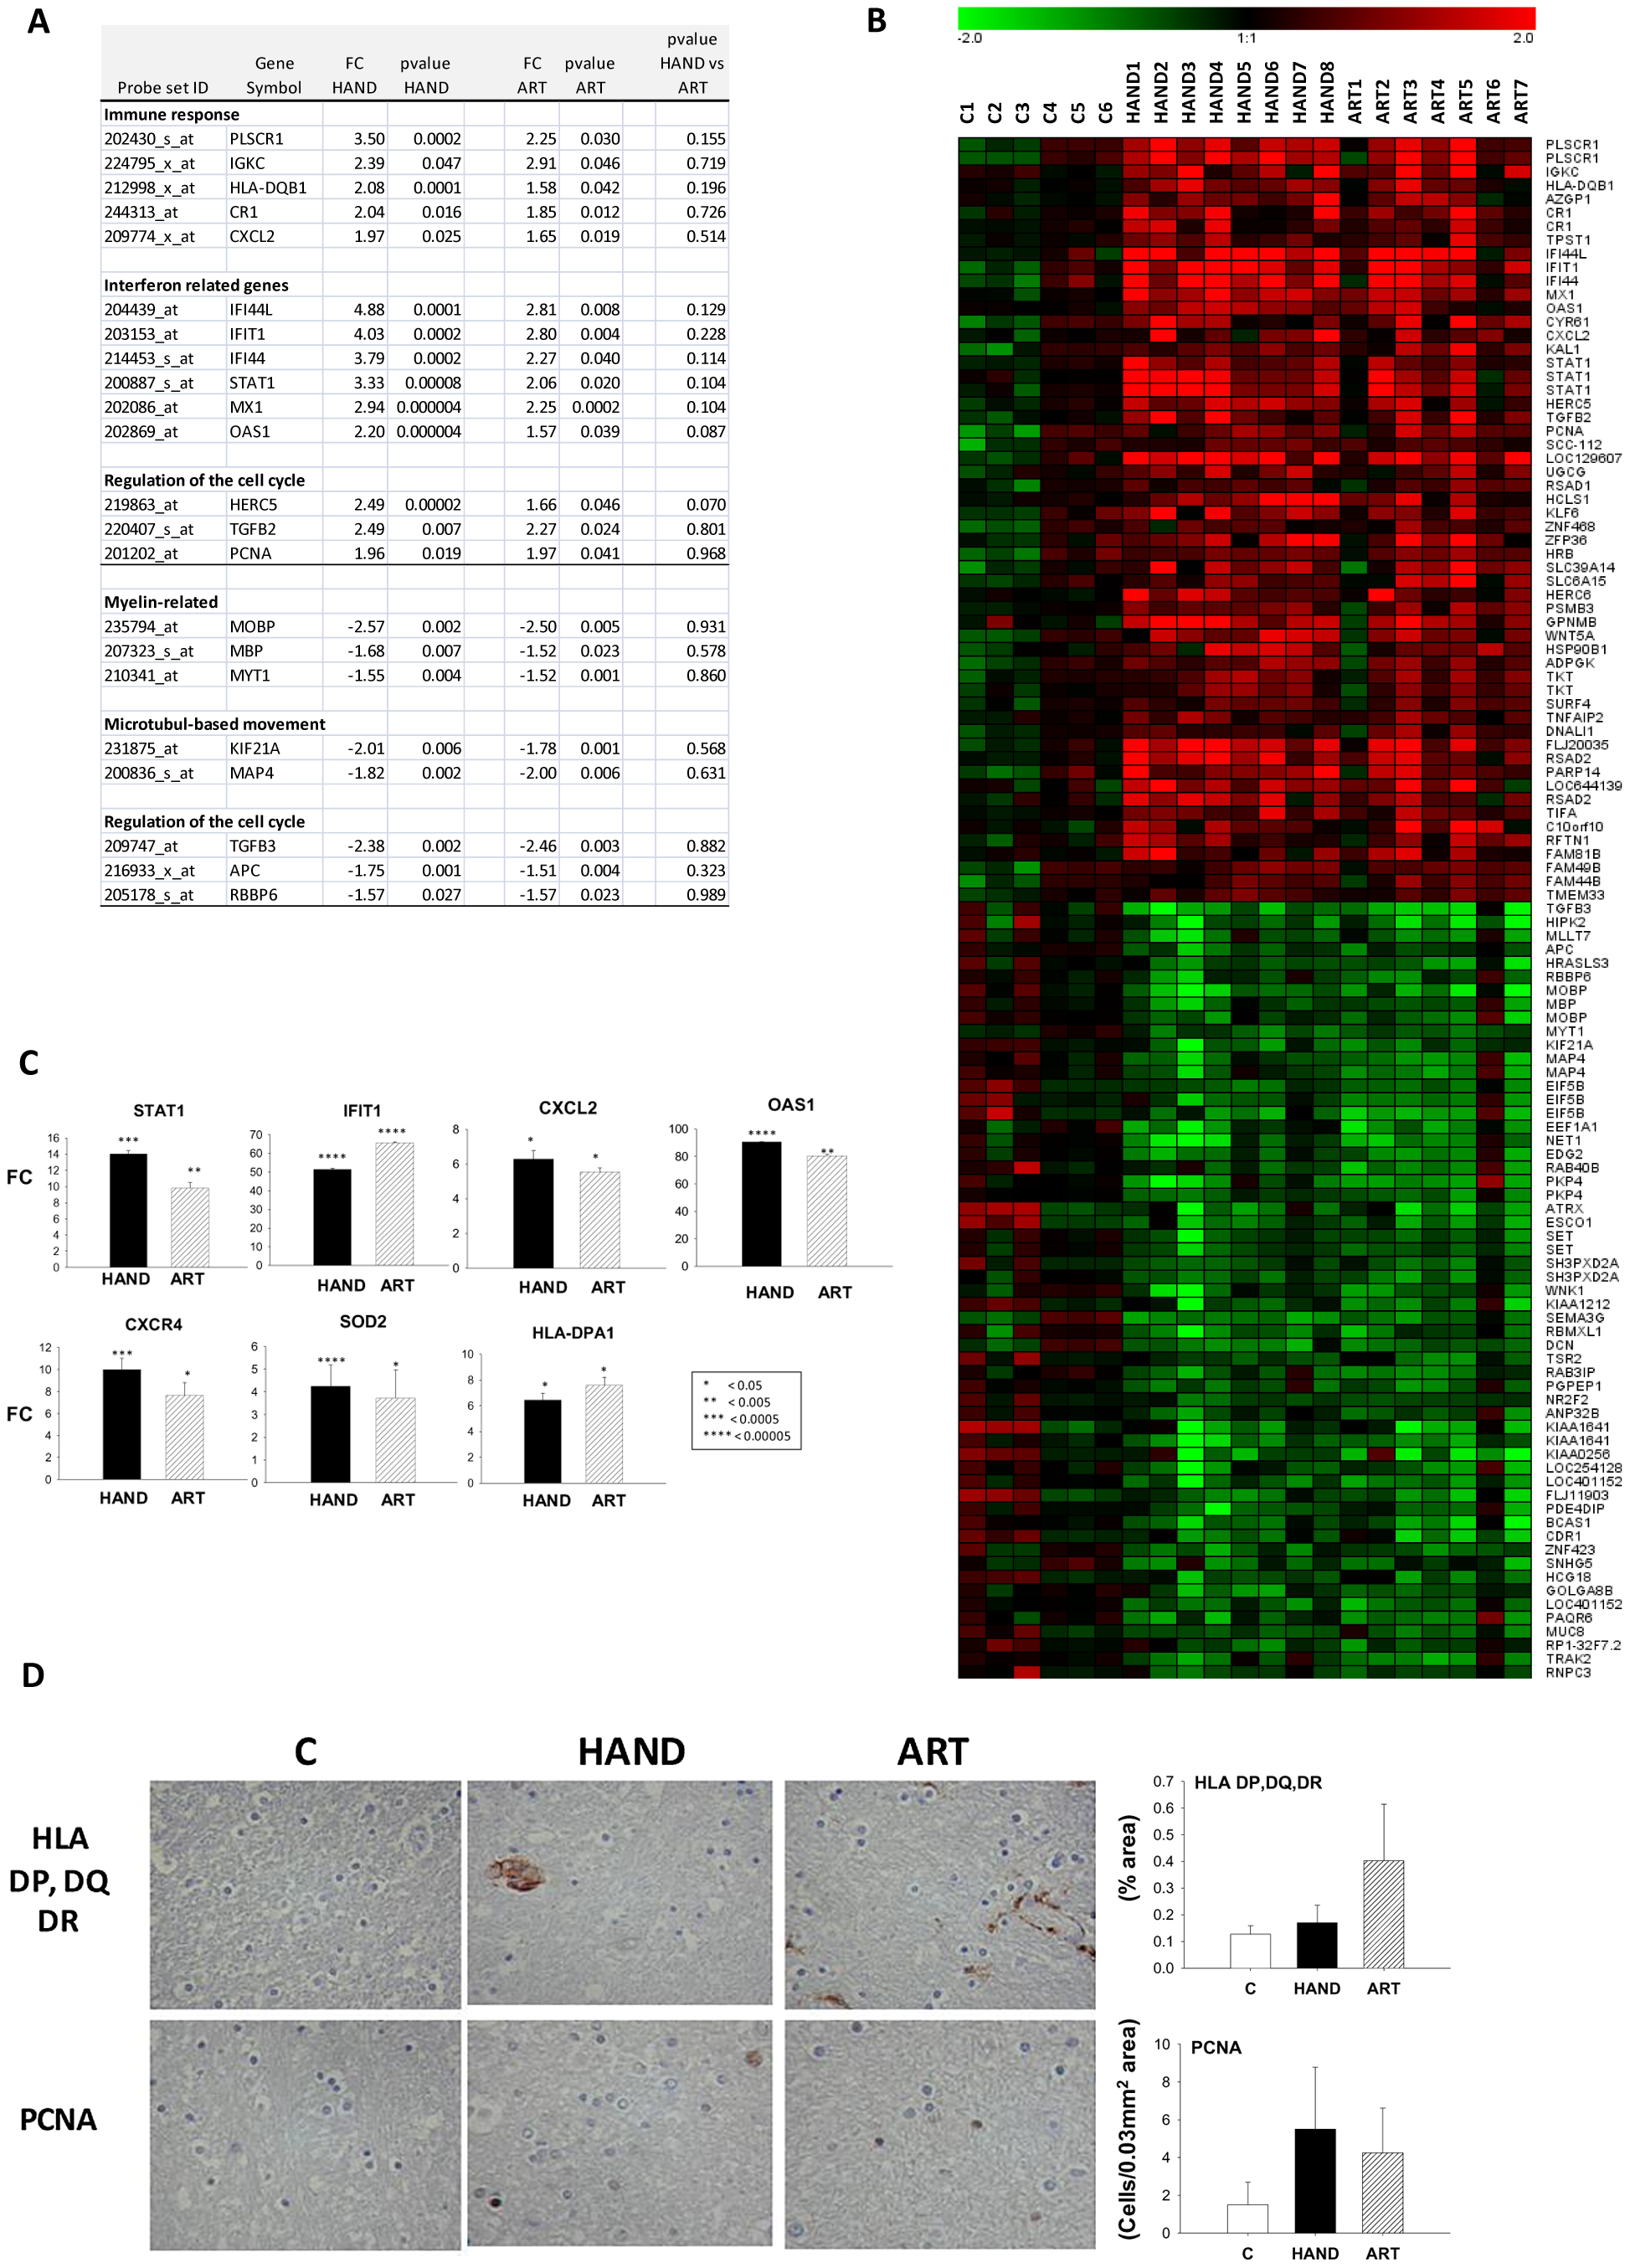 Common dysregulated genes in brain tissues of treated and untreated HAD patients.